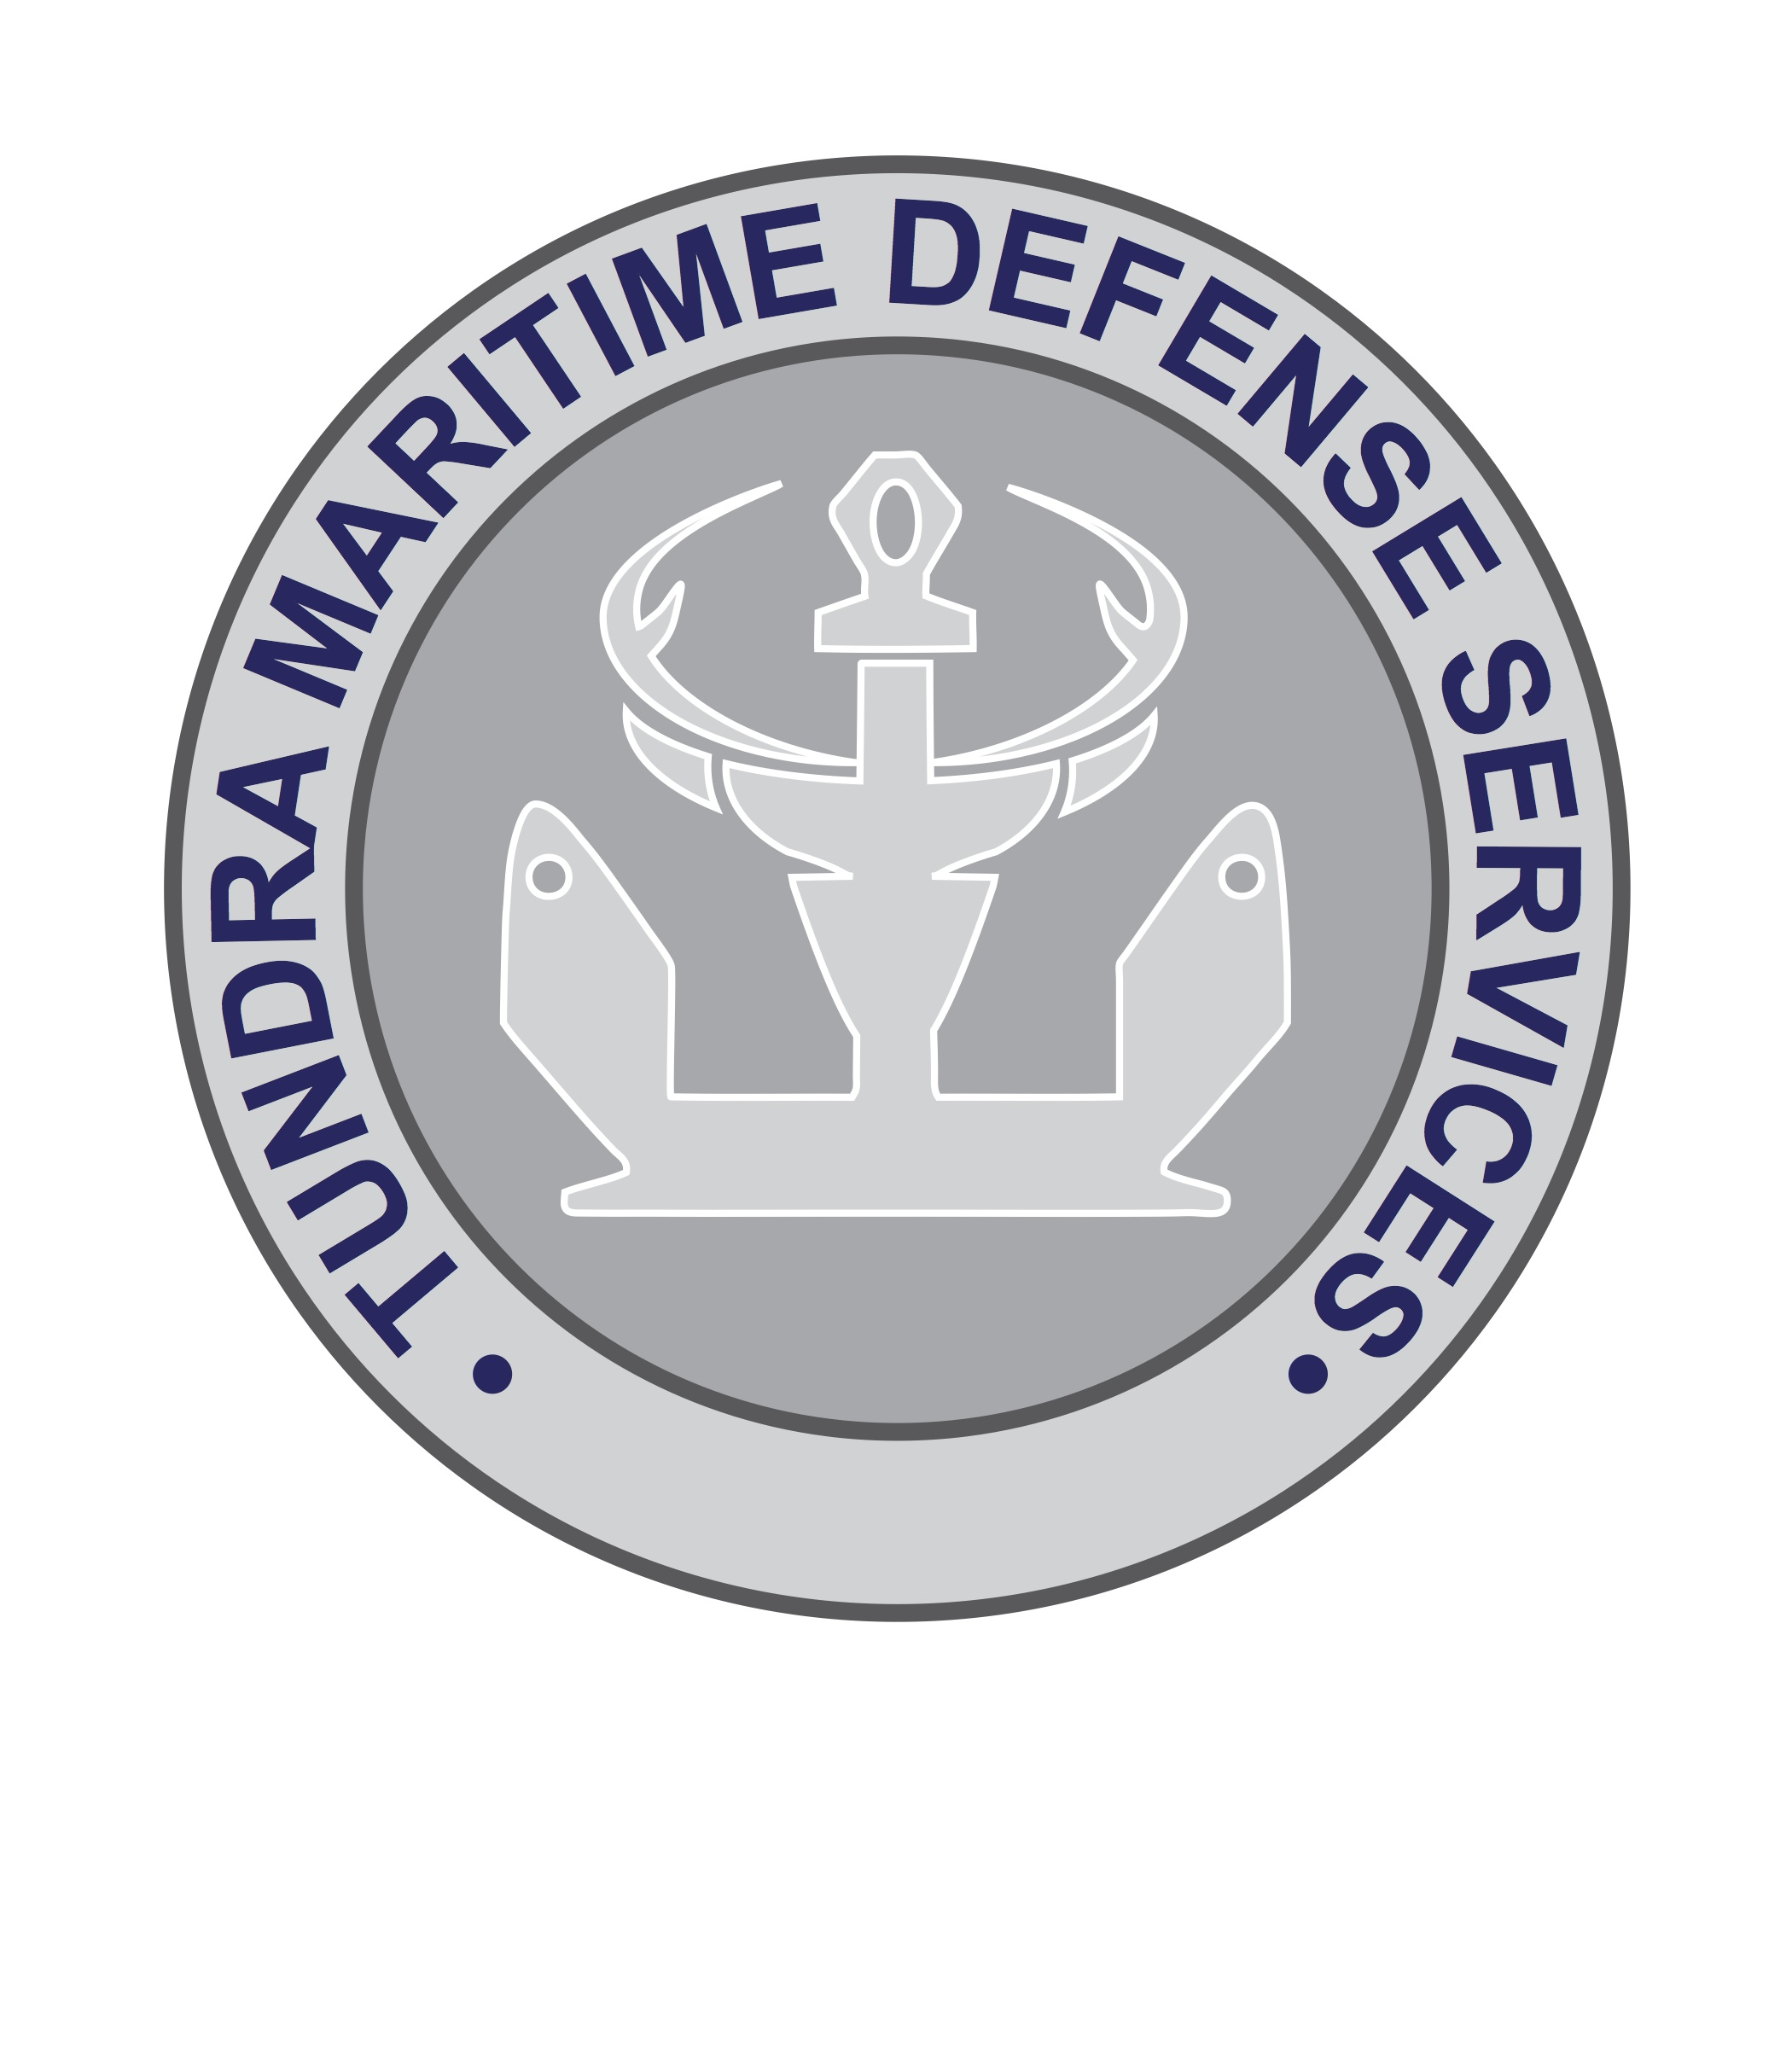 Tundra accredited maritime security review maritime division of tundra group are delighted to announce that they have now been formally awarded full certification accreditation for iso 28000 xflitez Gallery